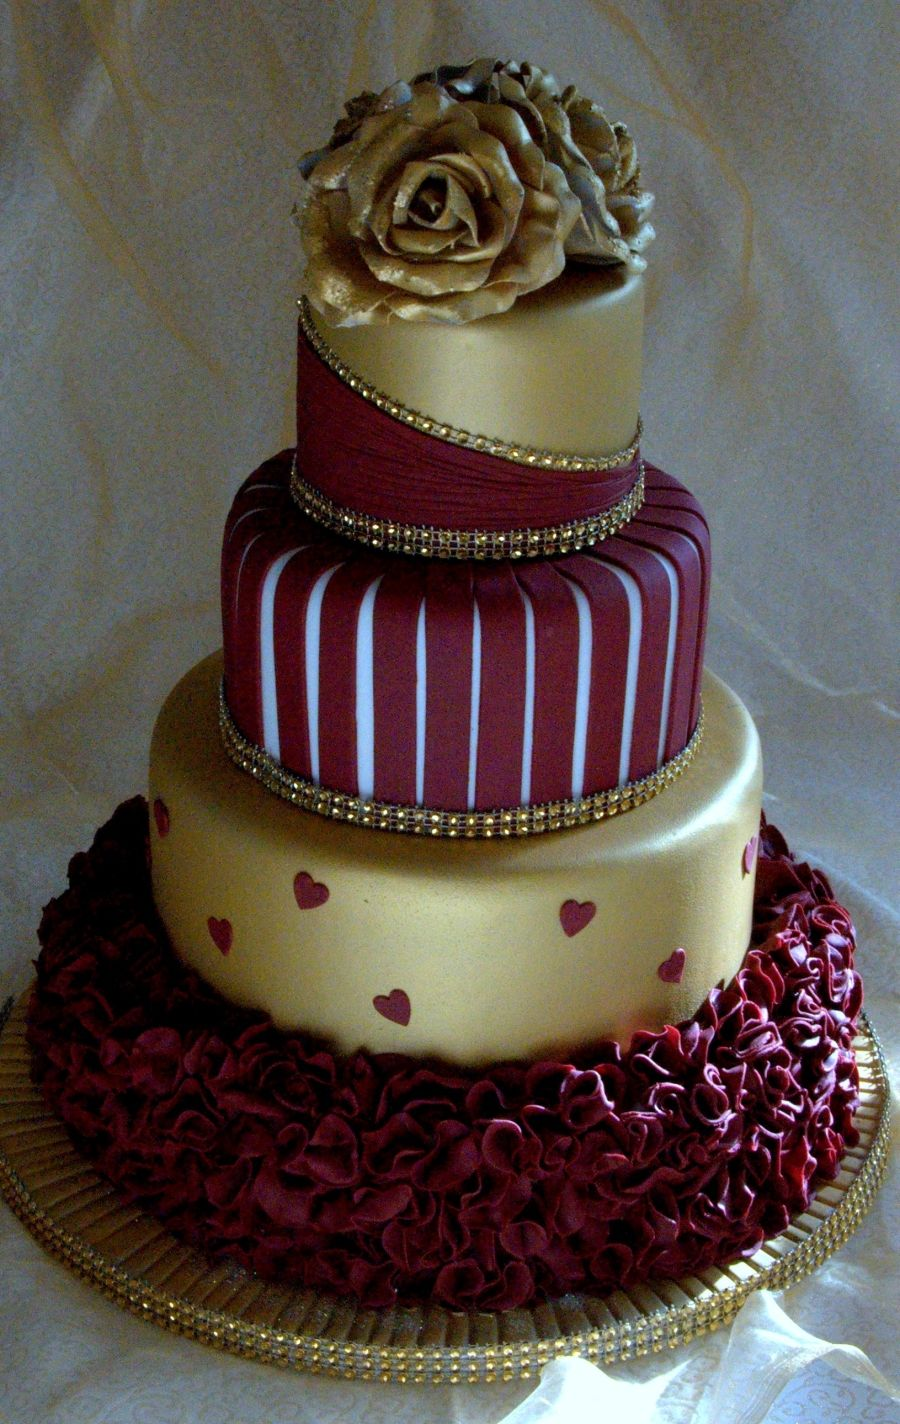 Gold and burgundy wedding cake with ruffles and roses